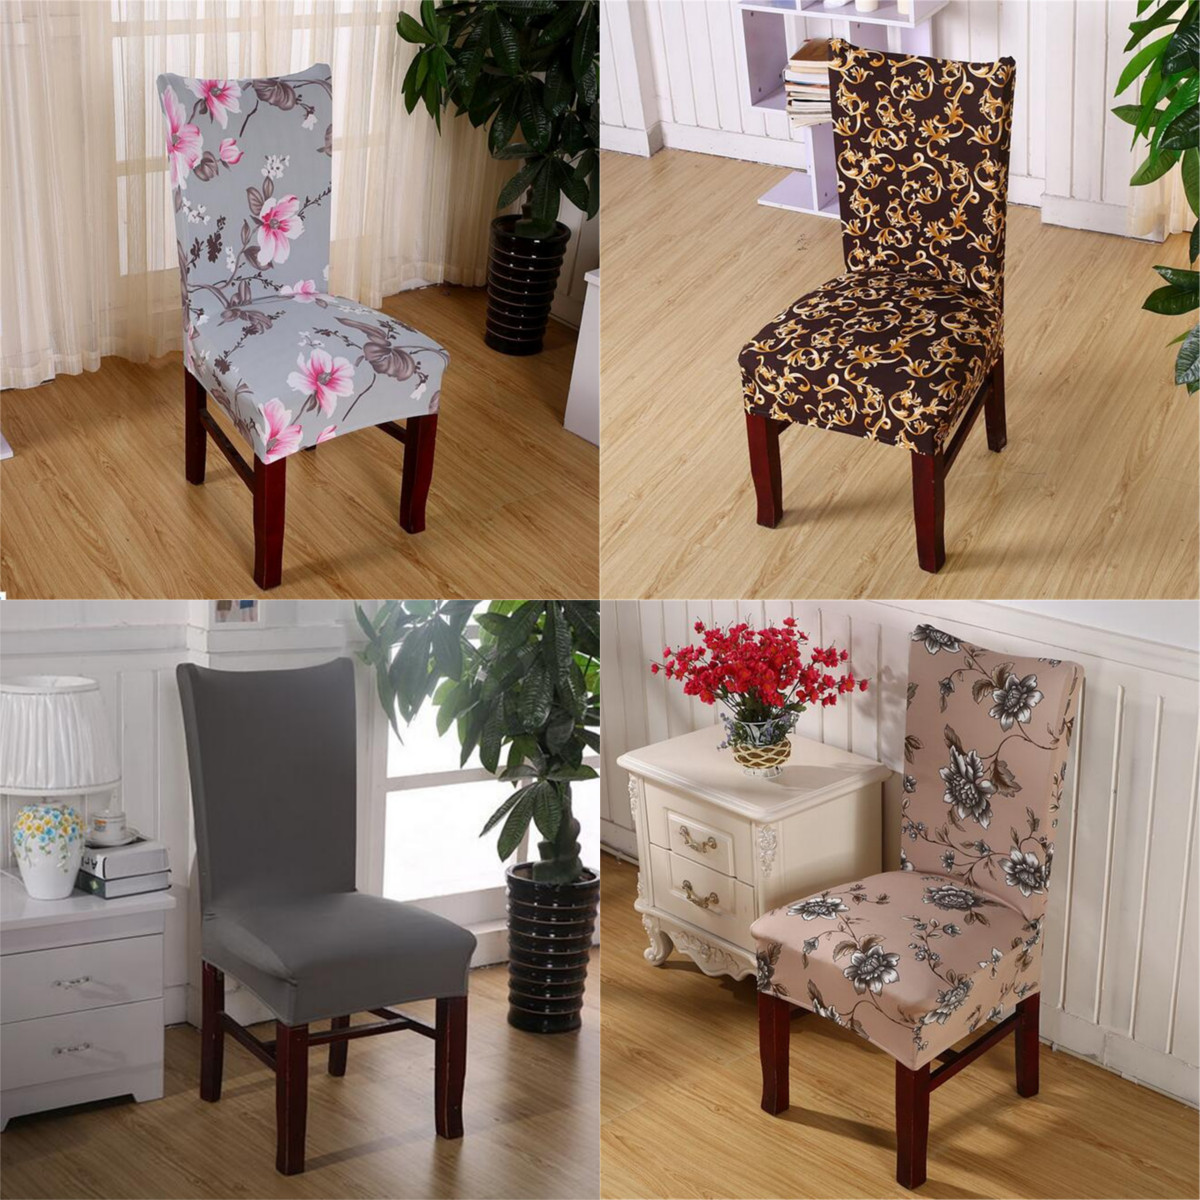 Hot Chair Covers Soft Spandex Fit Stretch Short Dining Room Chair Covers with Printed Pattern, Banquet Chair Seat Protector Slipcover for Hone Party Hotel Wedding Ceremony